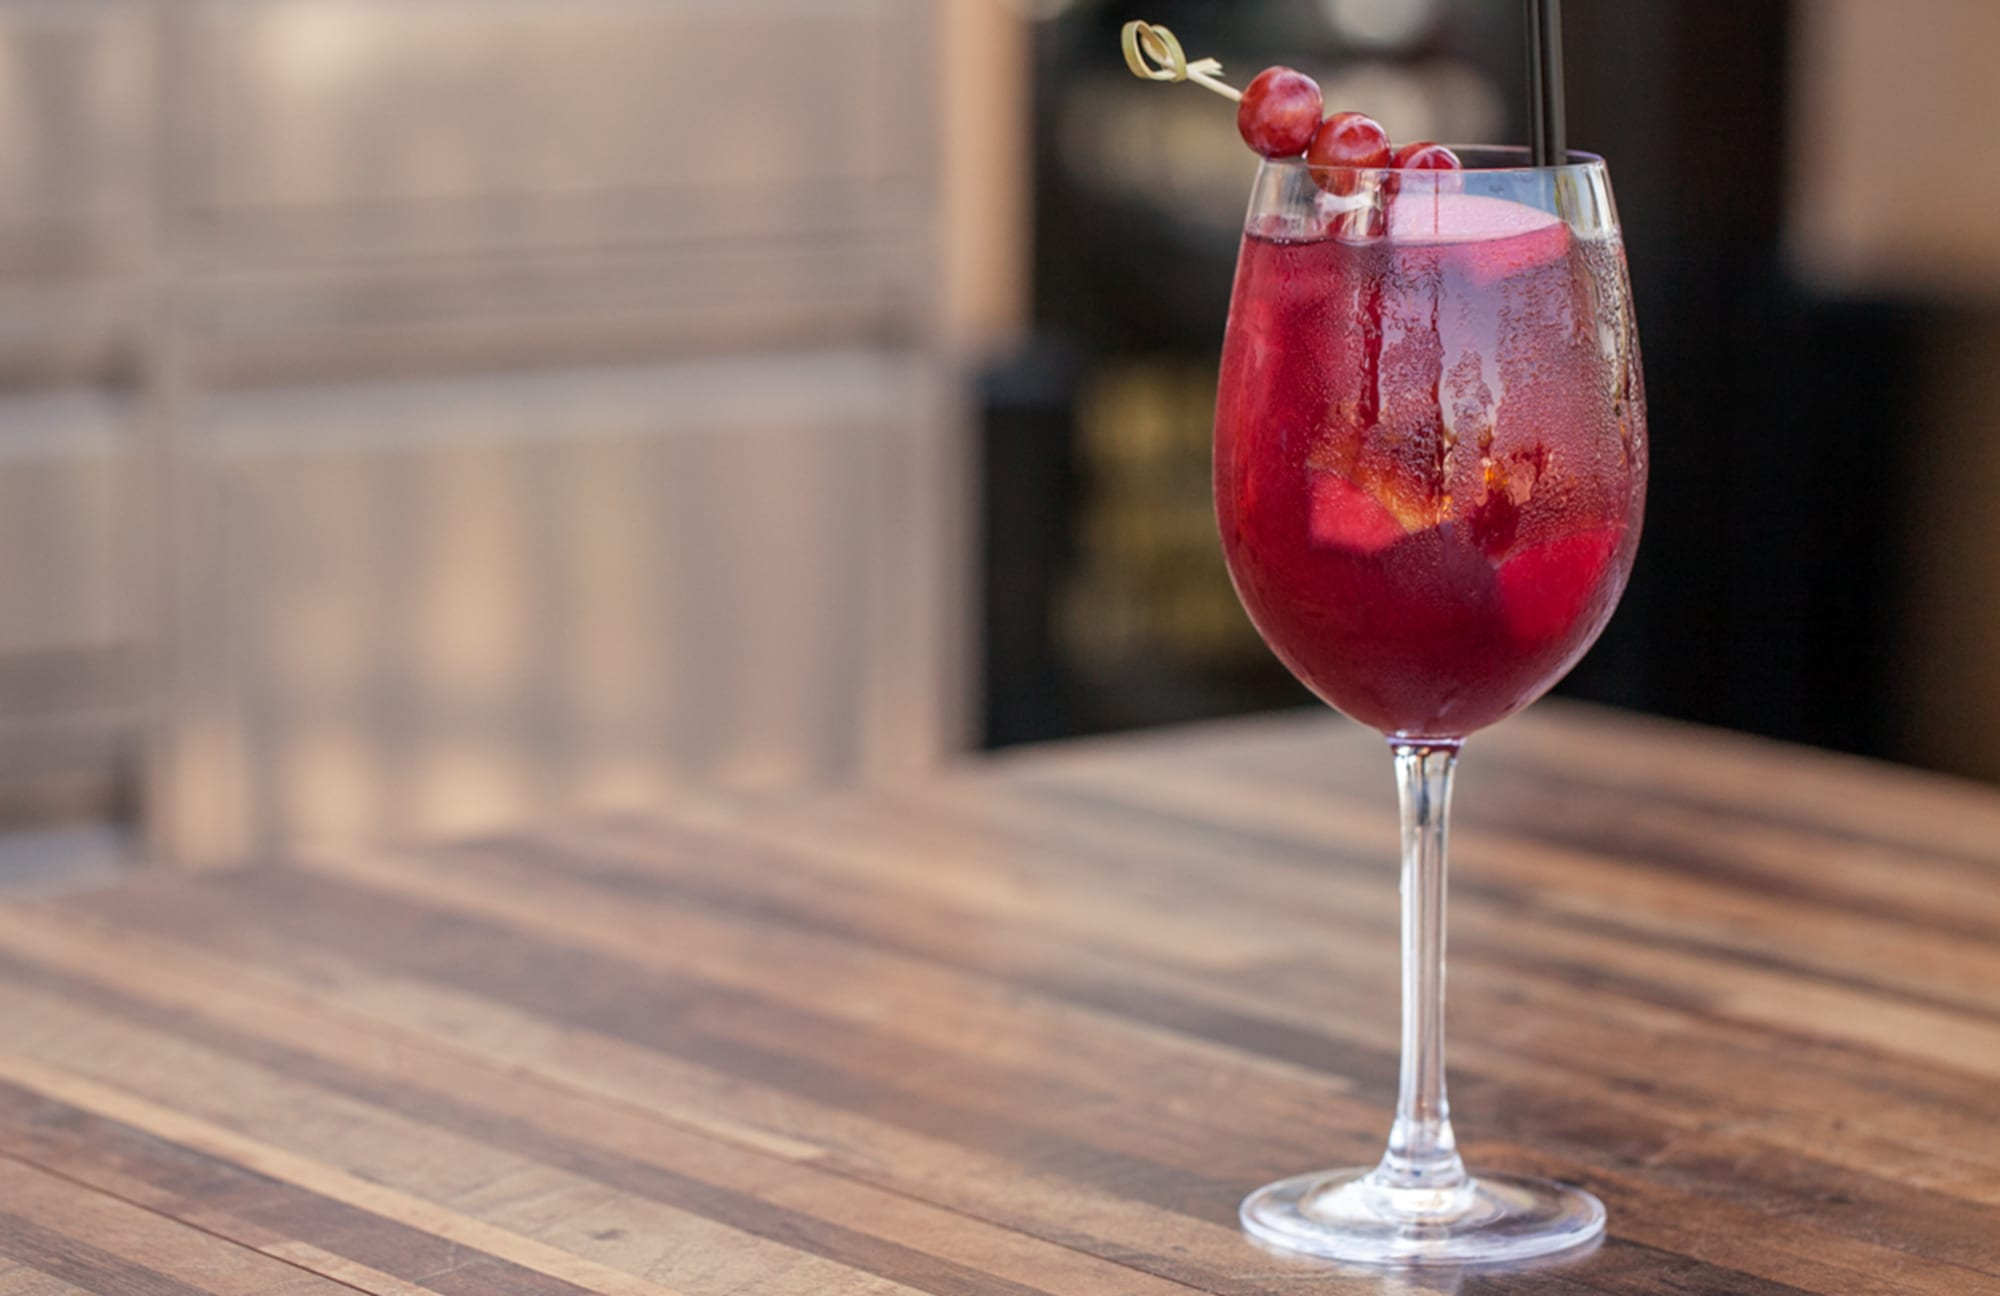 Cheesecake Factory released its red sangria recipe and you need to make it